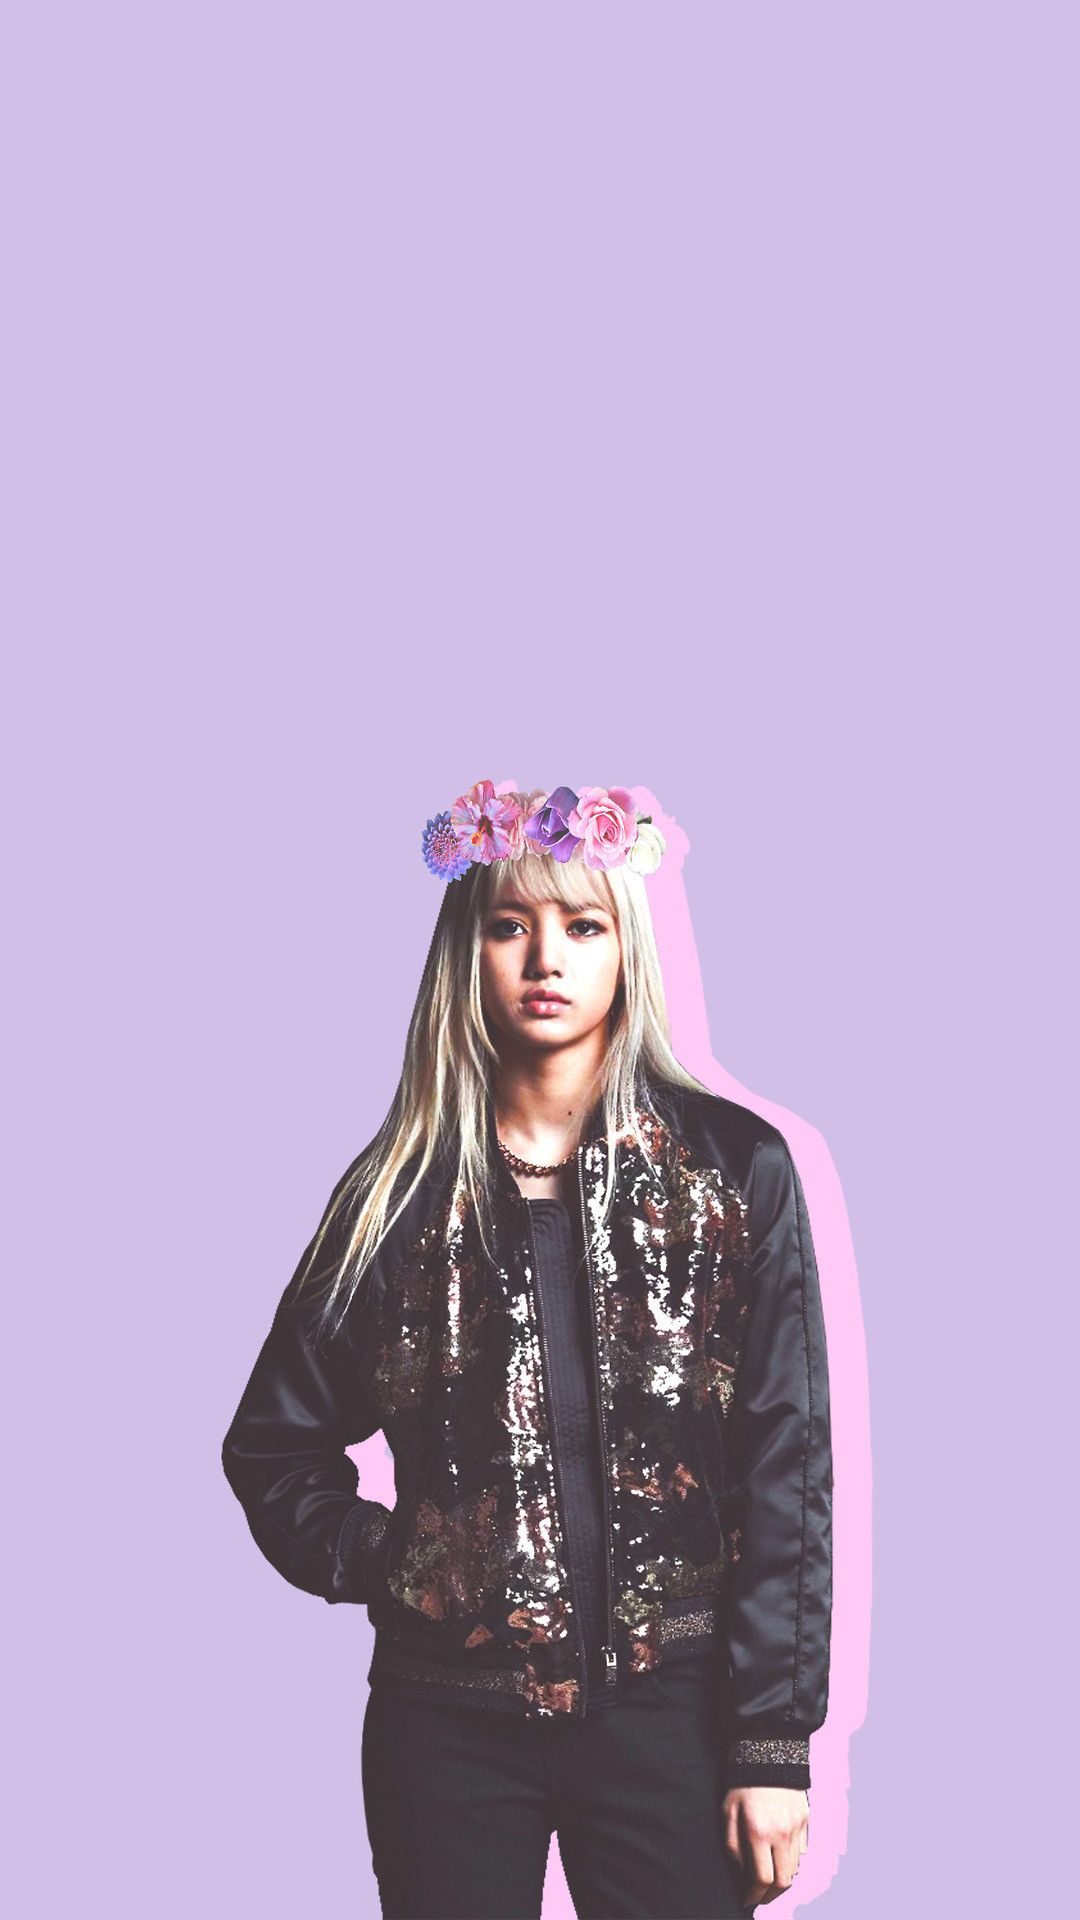 Free Download New Blackpink Wallpapers 1080x1920 For Ipad Pro Music In 2019 1080x1920 For Your Desktop Mobile Tablet Explore 16 Lisa Black Pink Wallpapers Black Pink Lisa Wallpapers Lisa